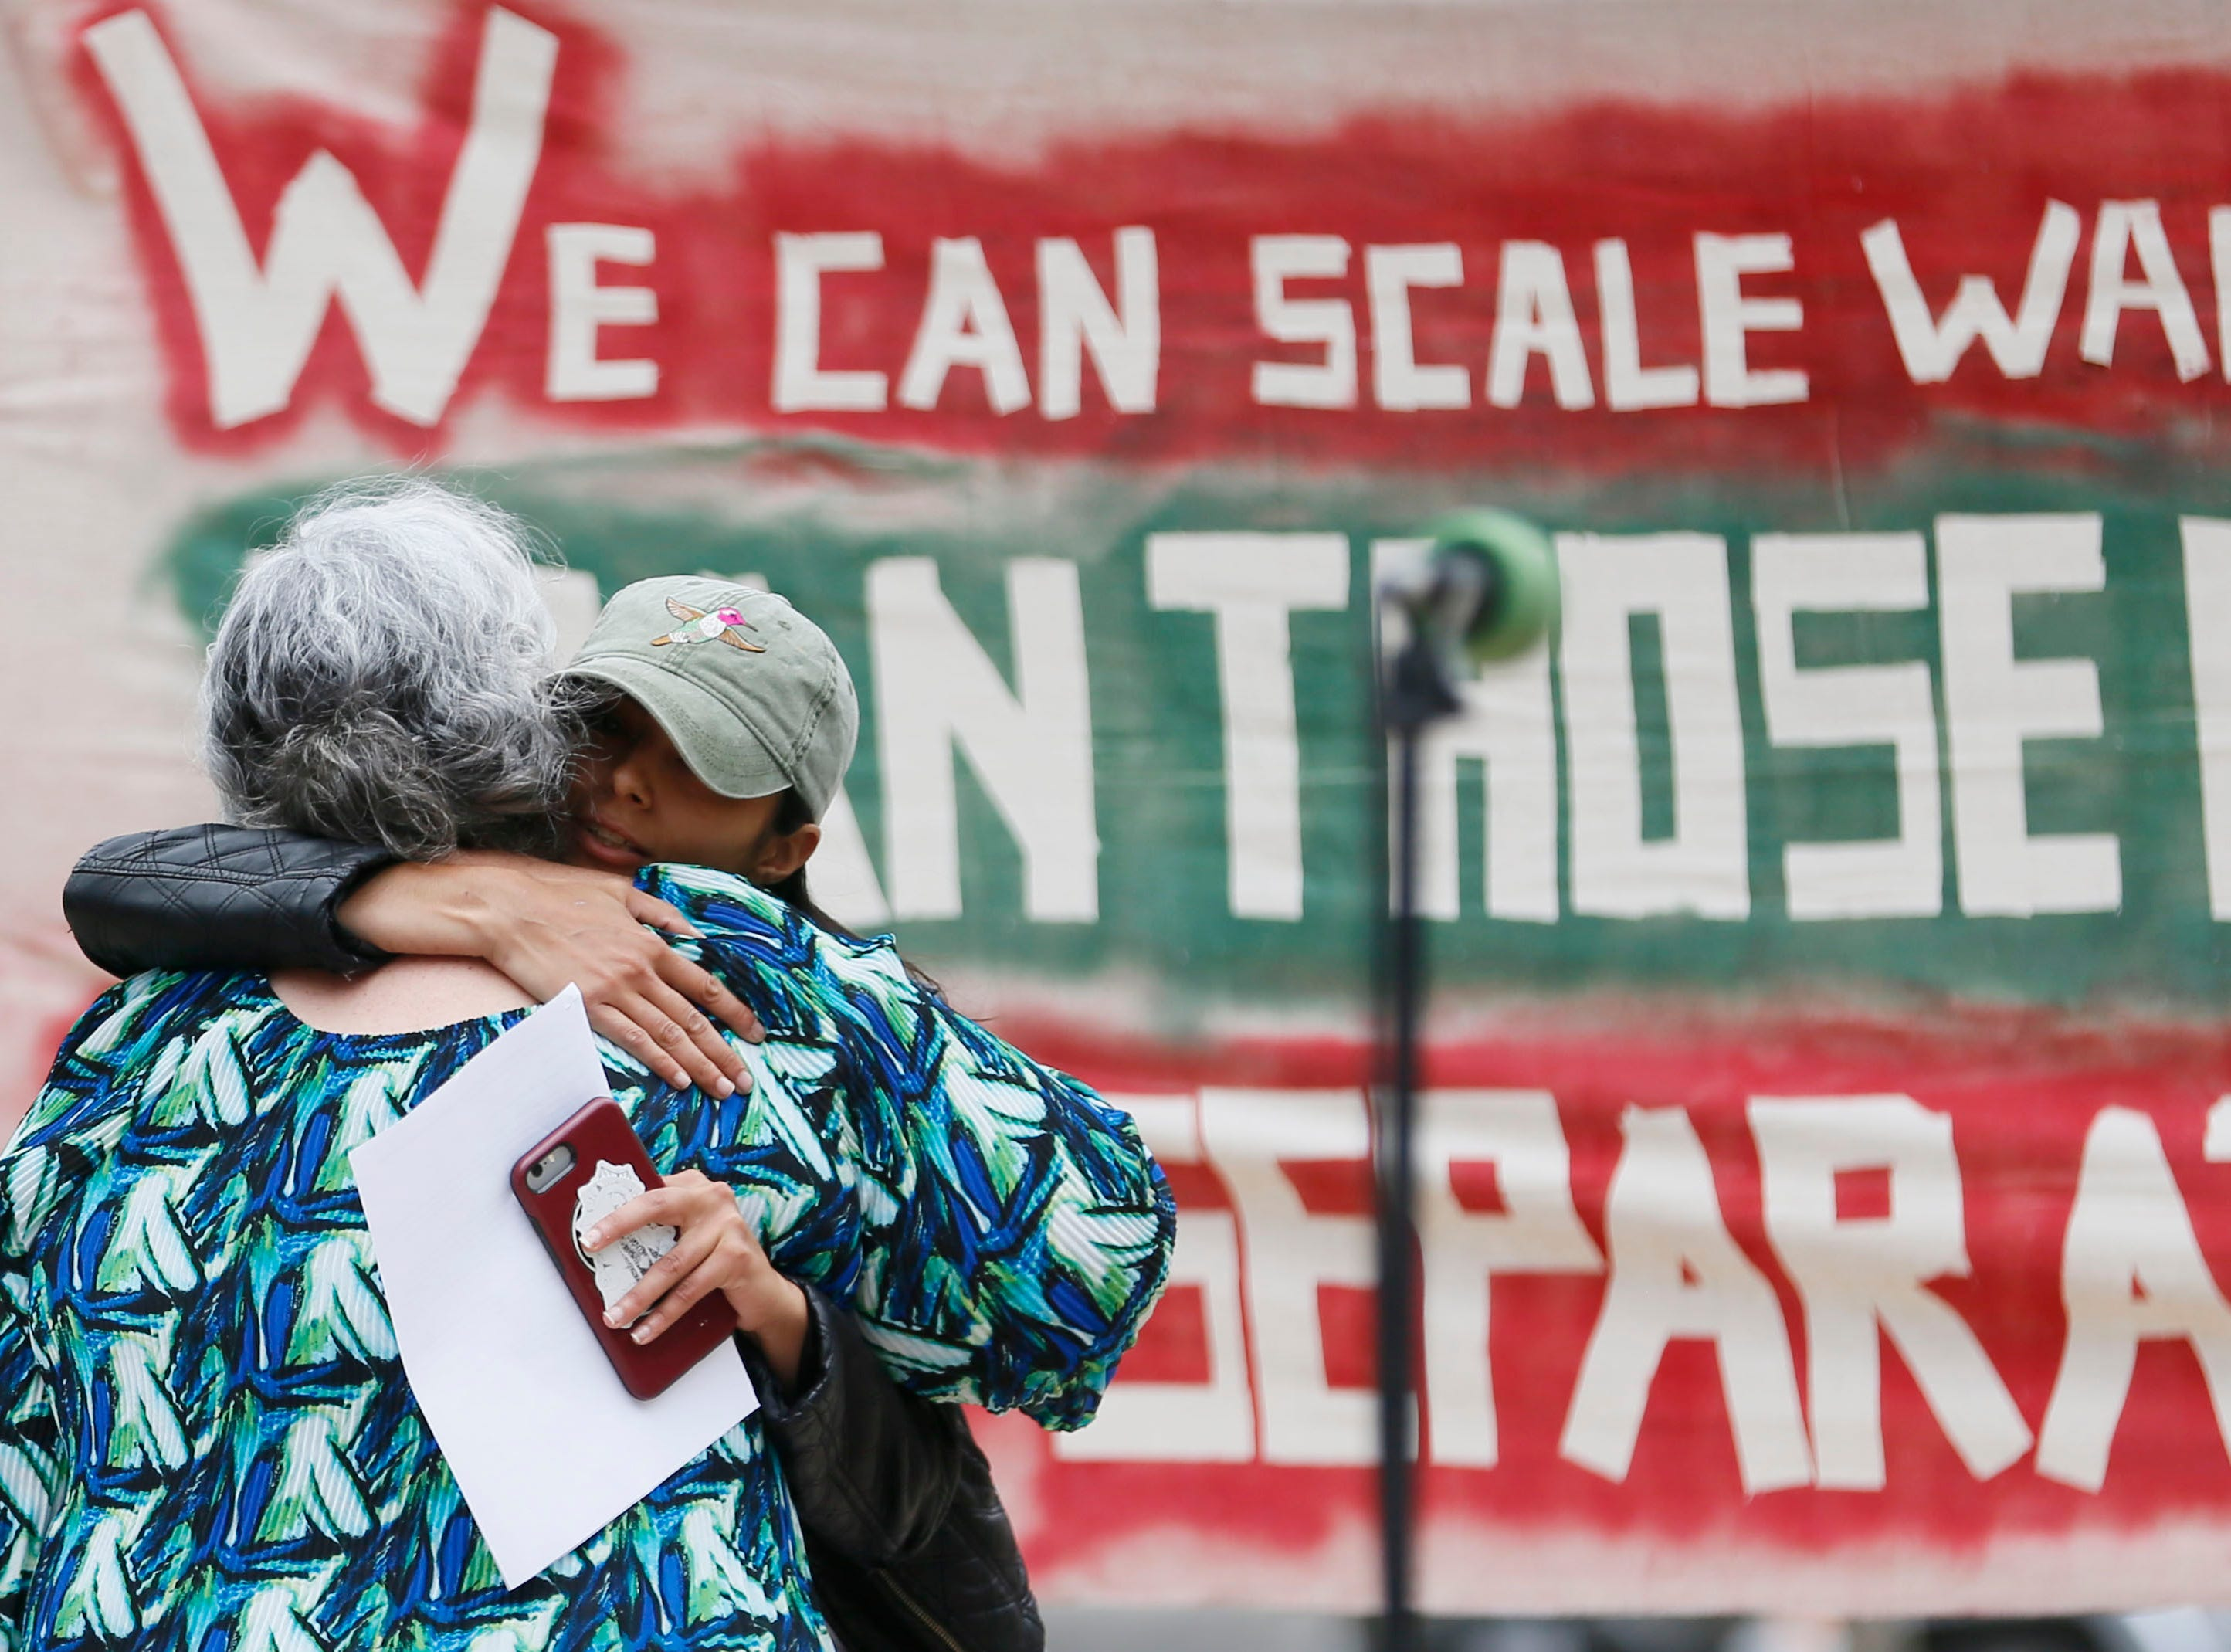 Andrea Martinez, Indivisible El Paso executive director, gives Yolanda Chavez Leyva a hug after her speech during the Coalition to End Child Detention - El Paso rally Sunday, May 12, to end family separation and child detention.